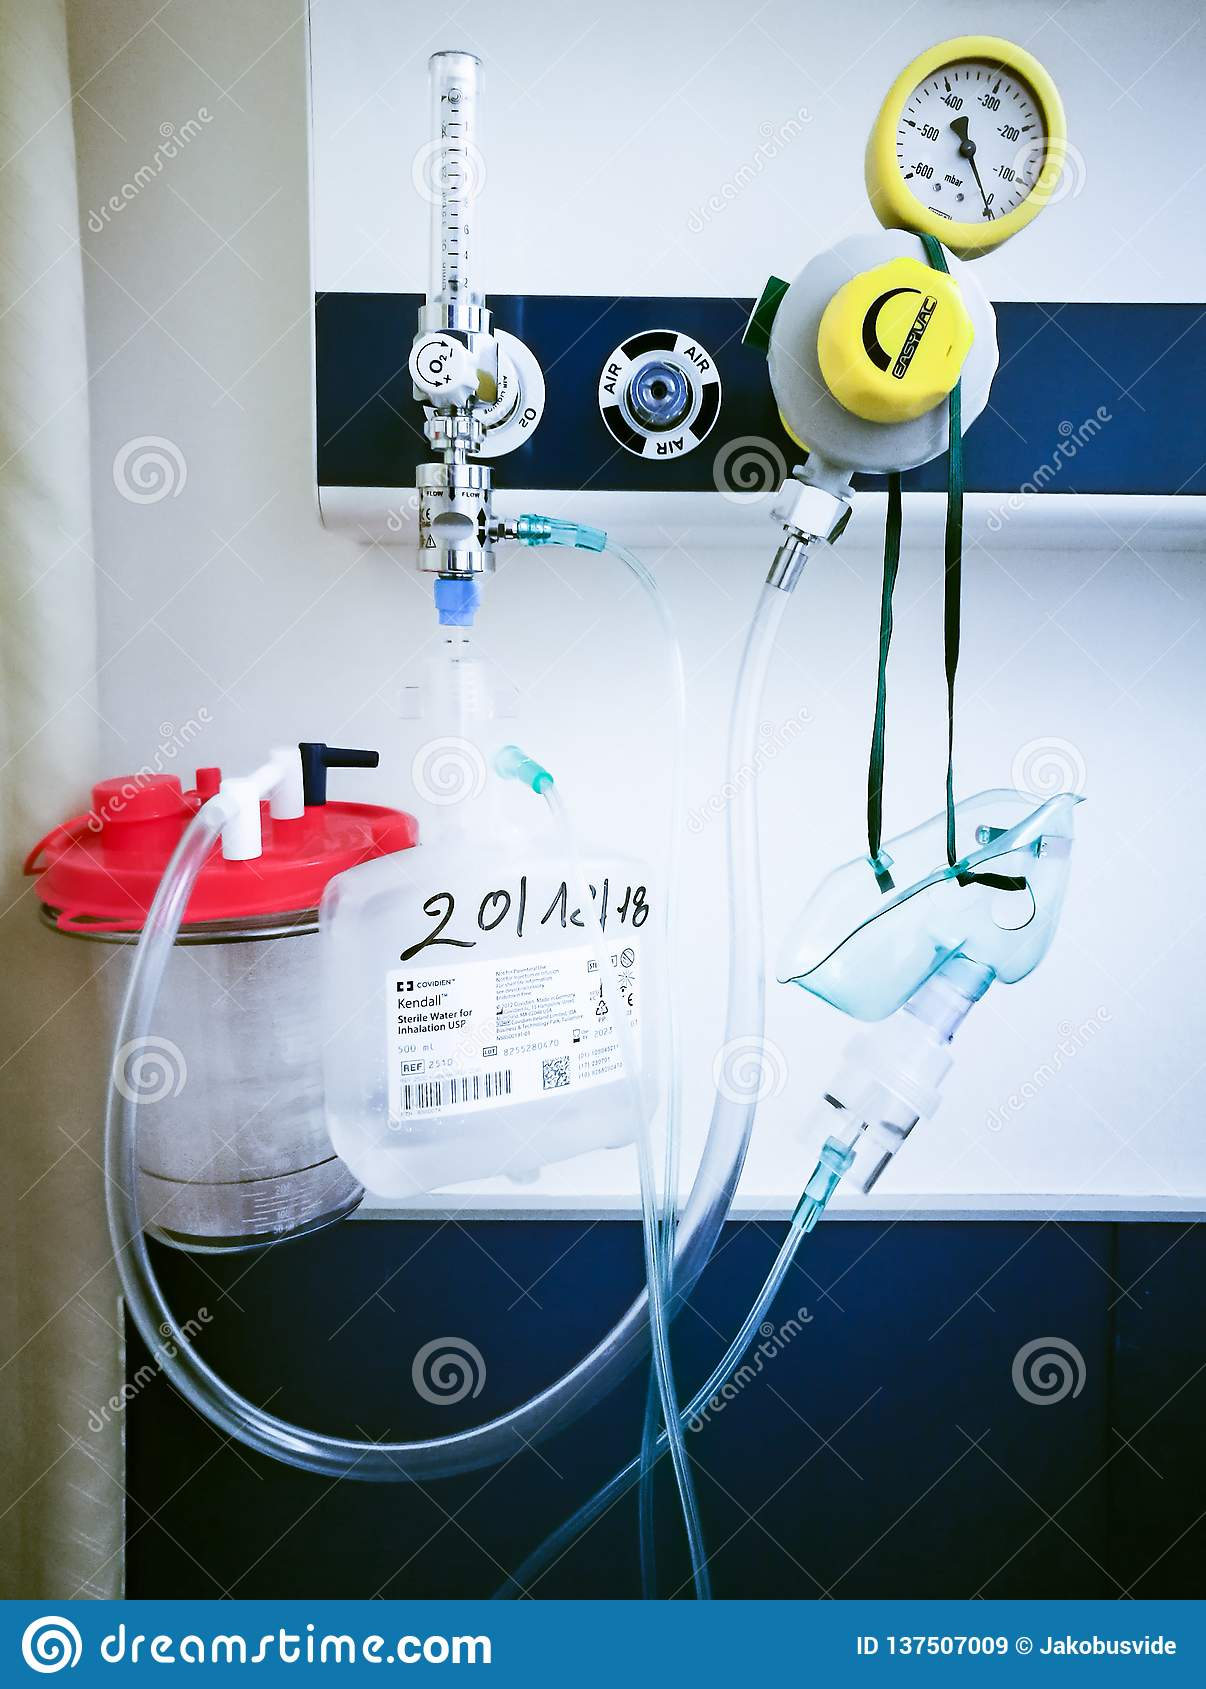 Oxygen Supply In A Hospital Bedroom Editorial Stock Image Image Of Outlets Healthcare 137507009